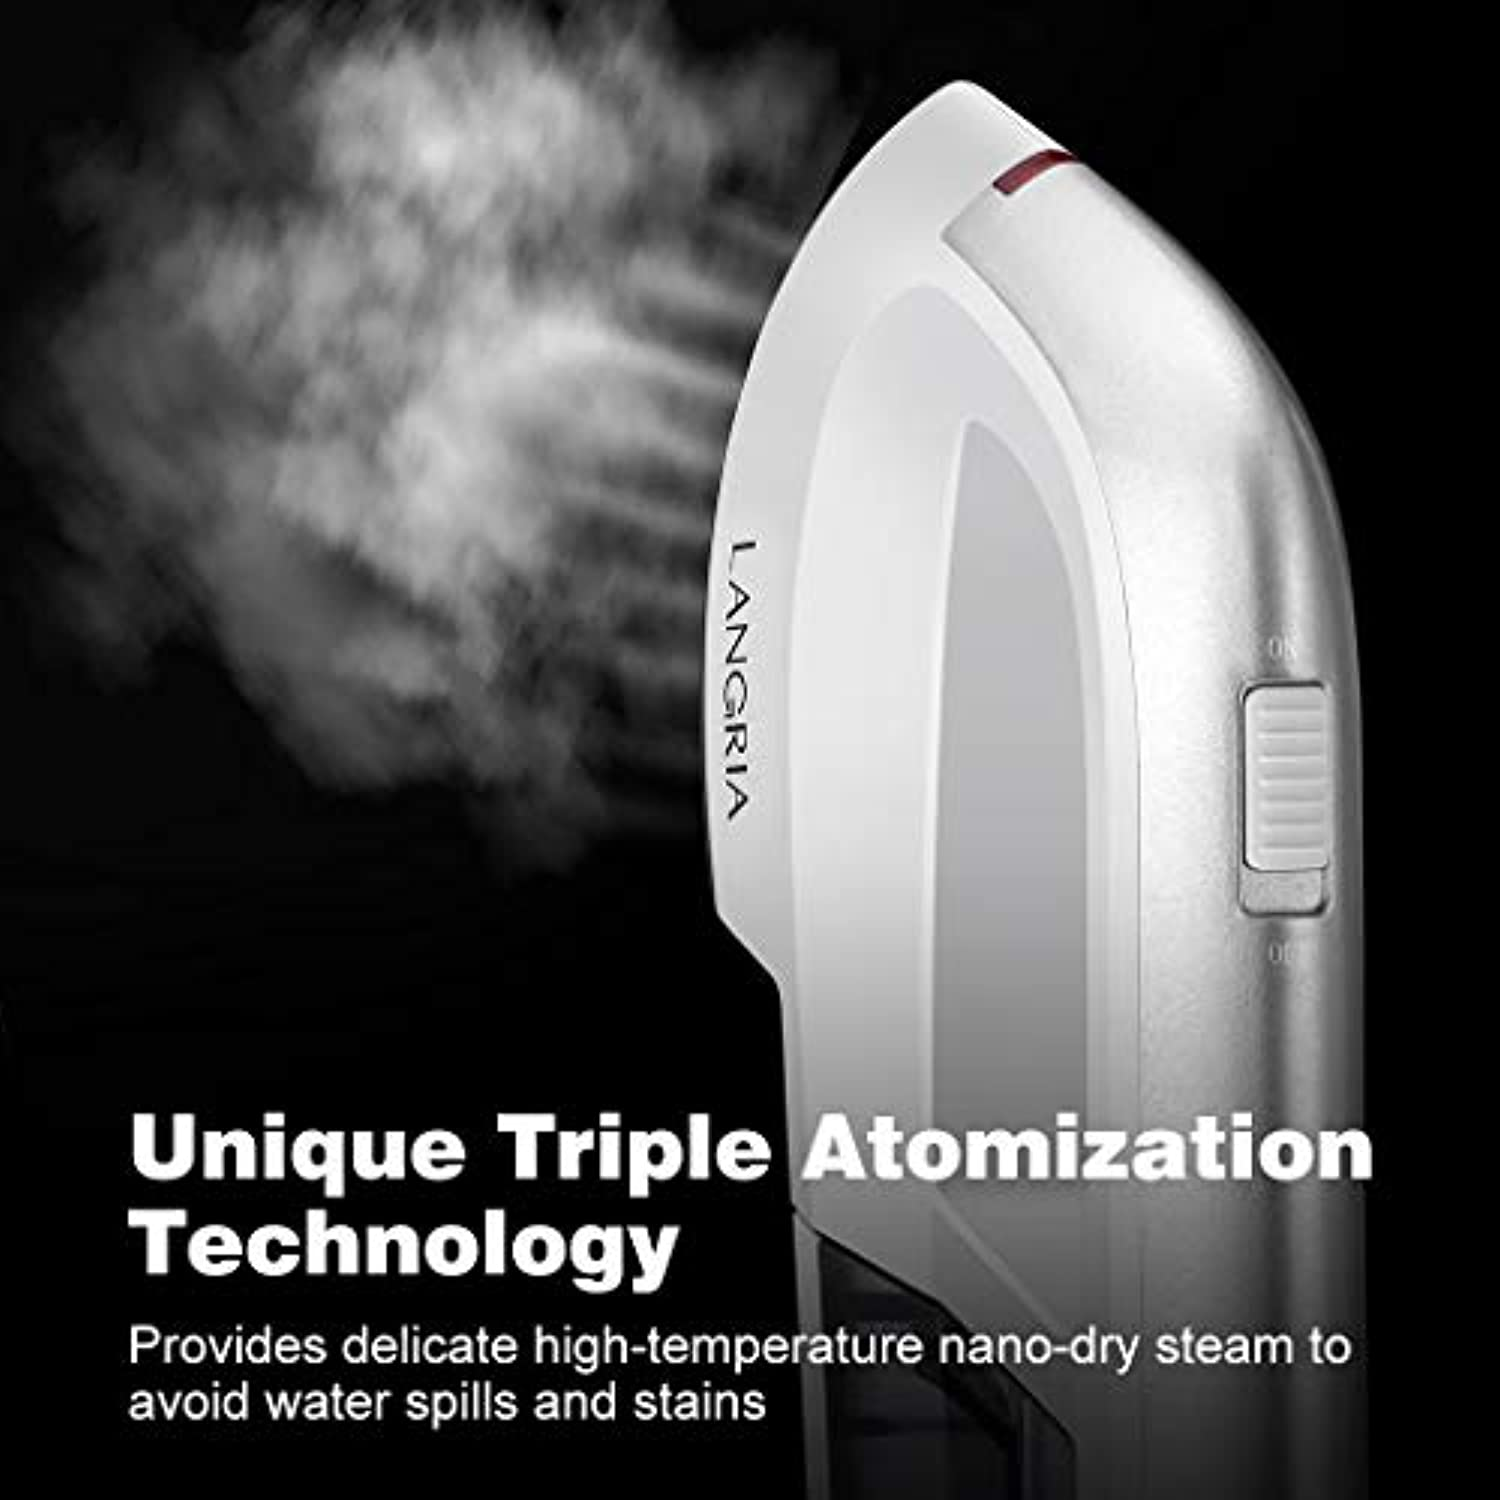 Classier: Buy LANGRIA LANGRIA 4 in 1 Portable Iron Steamer for Clothes, 1300W Powerful Garment Steamer with Horizontal and Vertical Ironing for Home and Travel - 40s Fast Heat-up, Ceramic Soleplate